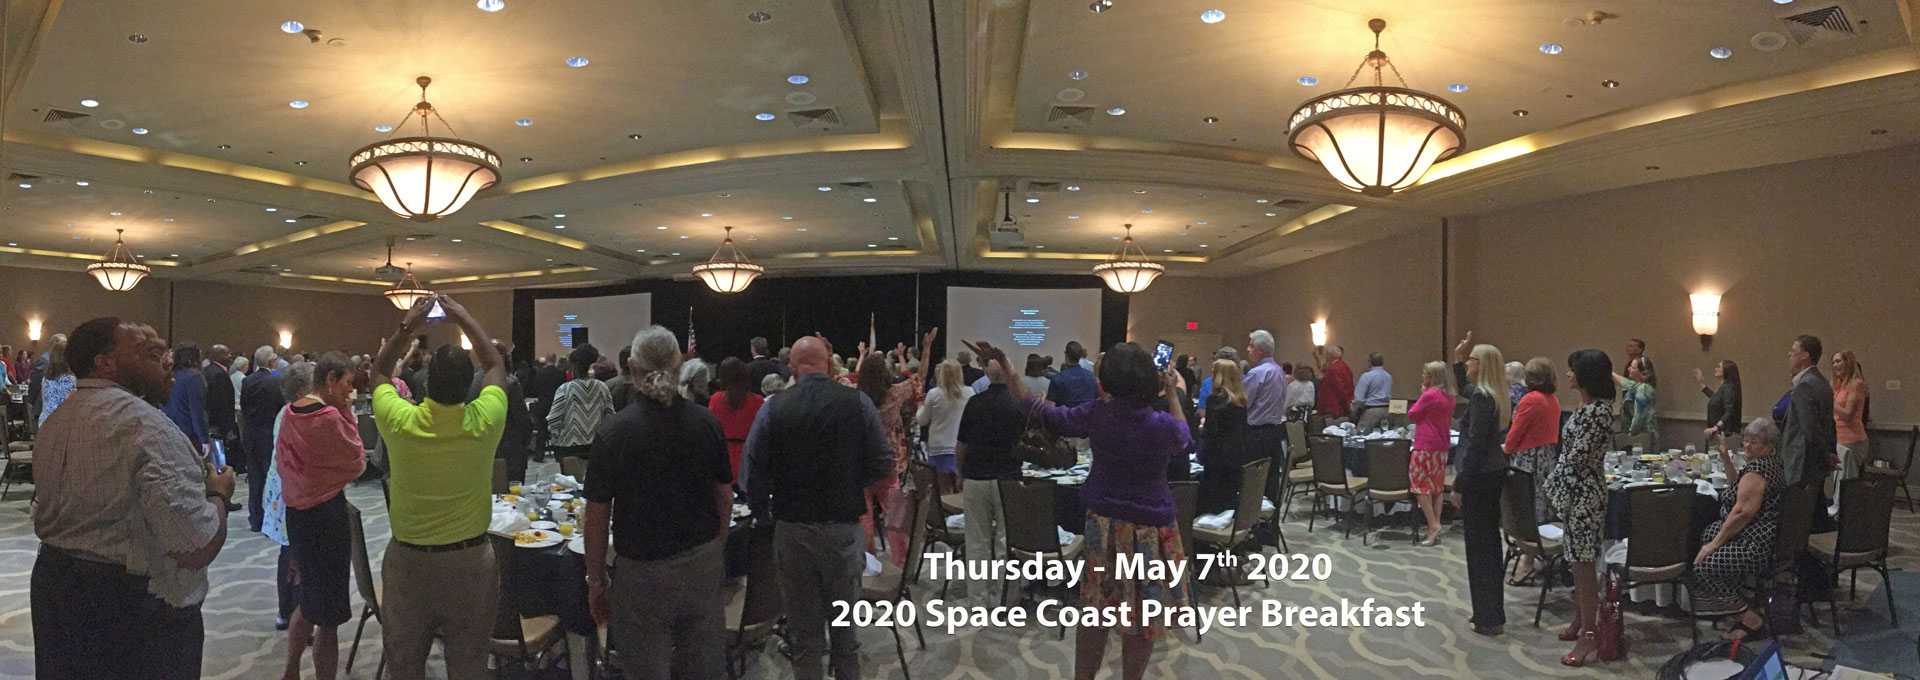 2020 Space Coast Prayer Breakfast